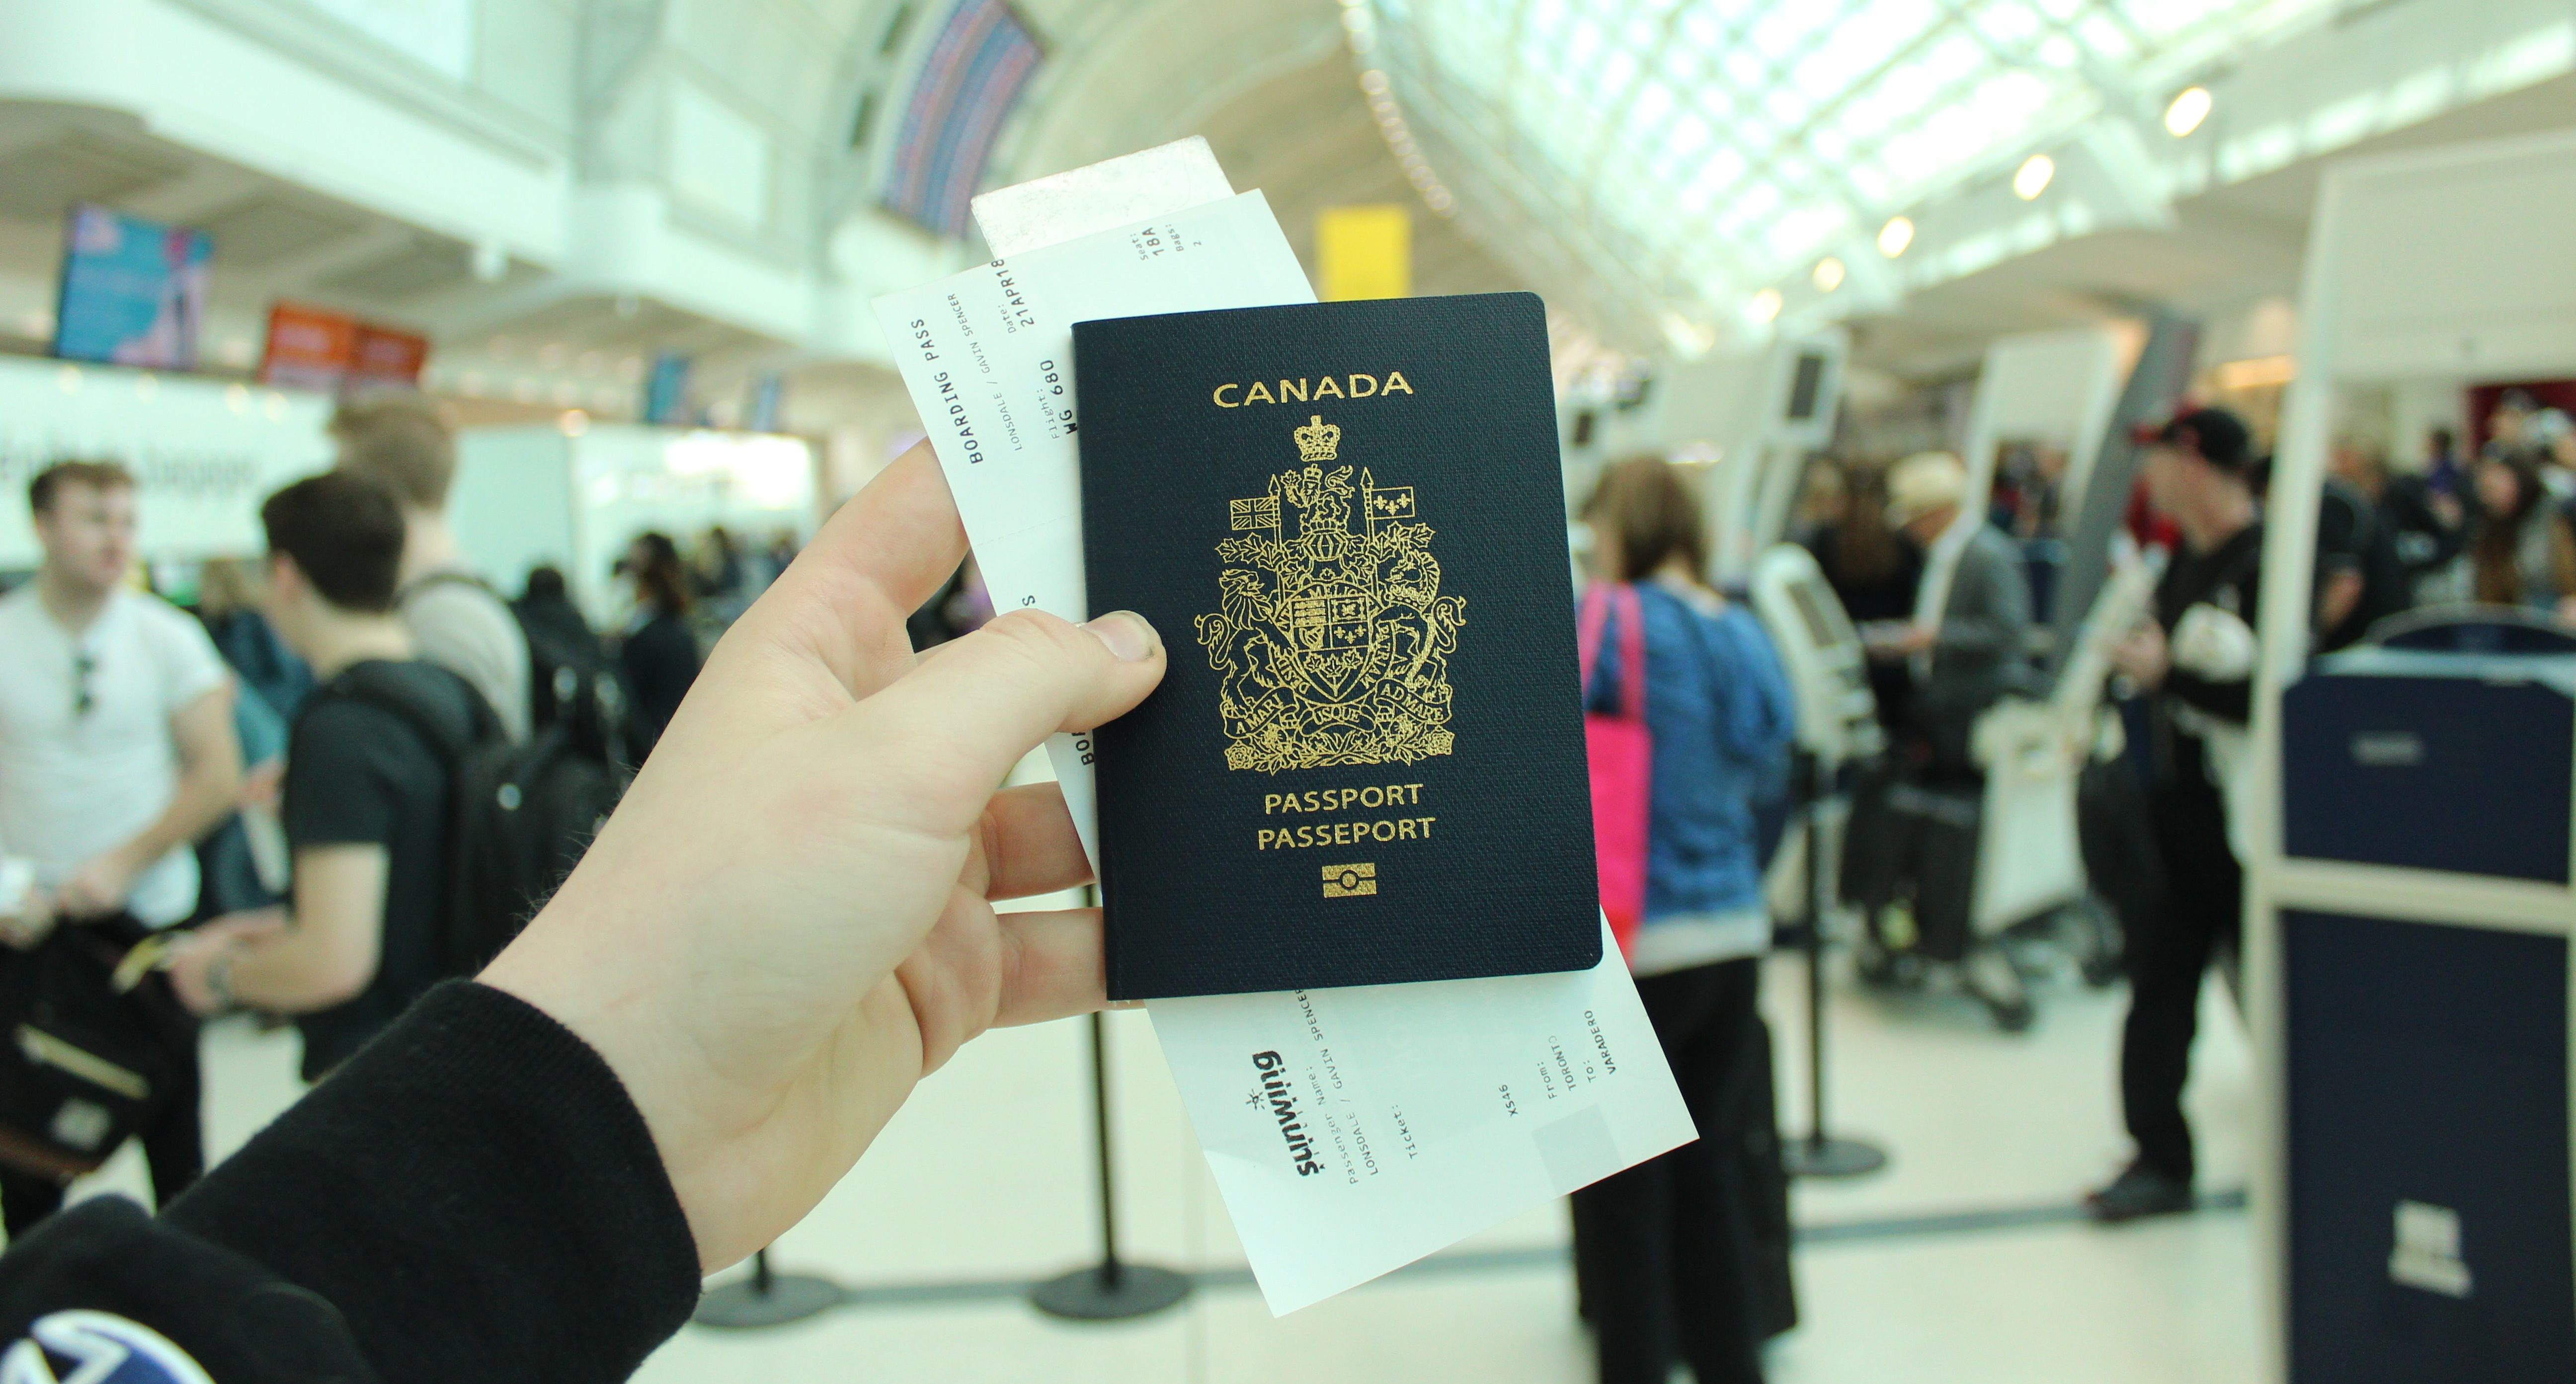 Global Affairs Canada offering loan of up to $5,000 to help get Canadians home